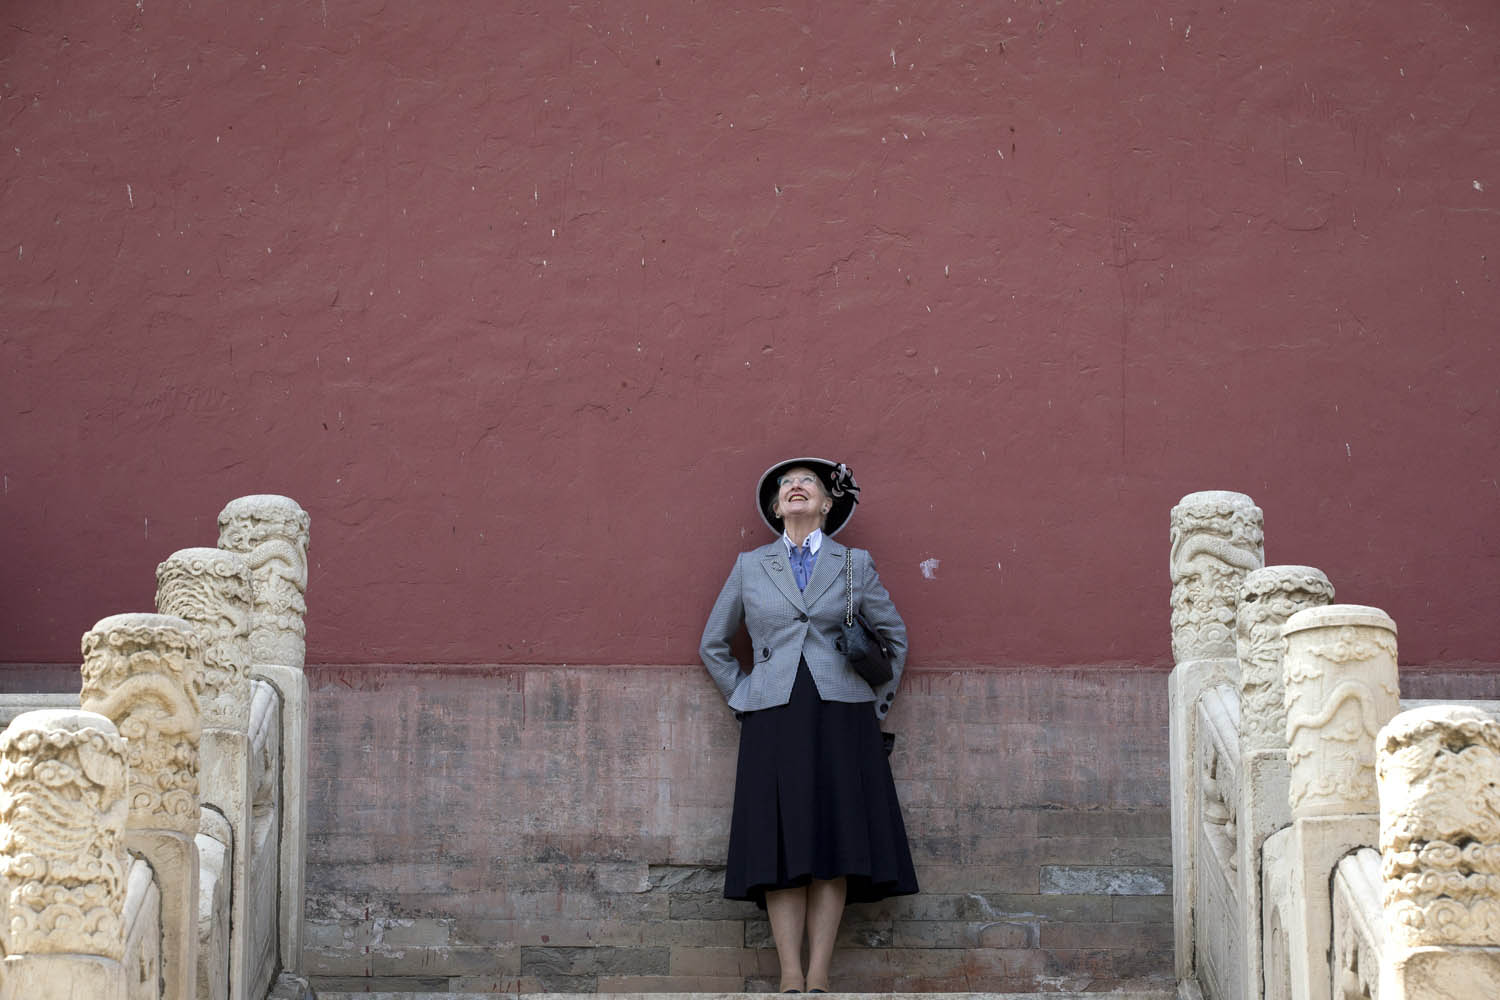 Danish Queen Margrethe II poses for photos as she visits Ming Tombs on the outskirts of Beijing on Saturday, April 26, 2014.